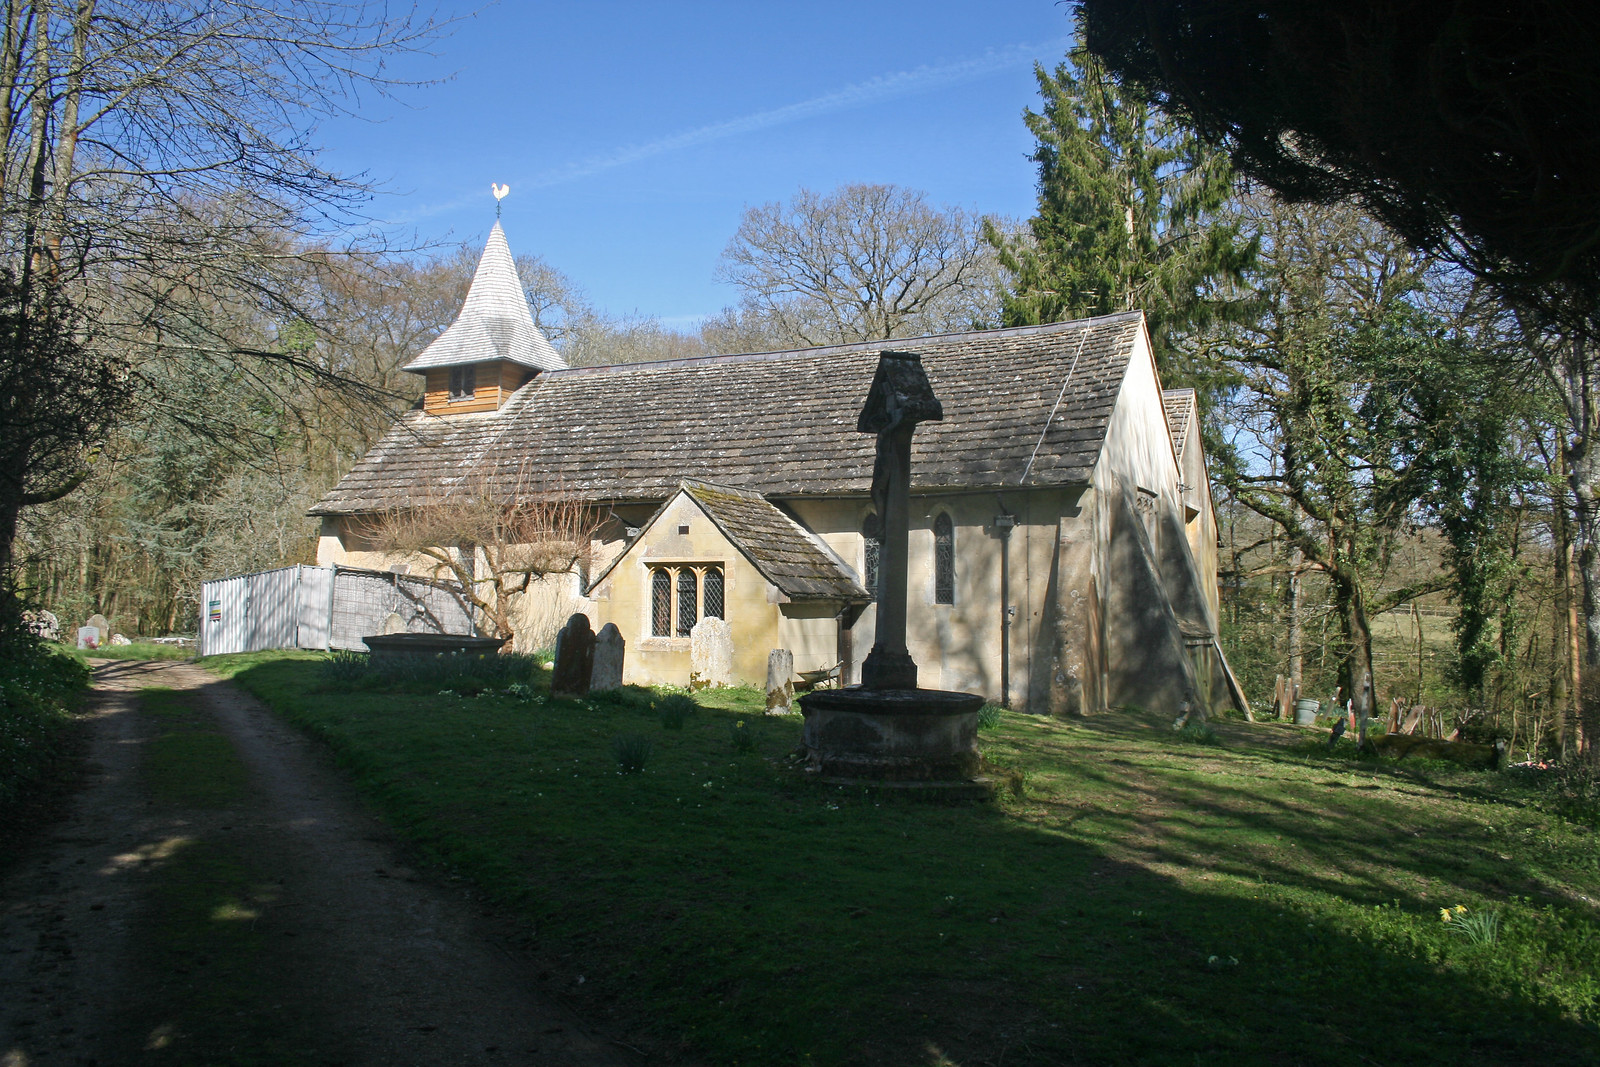 Walliswood Church